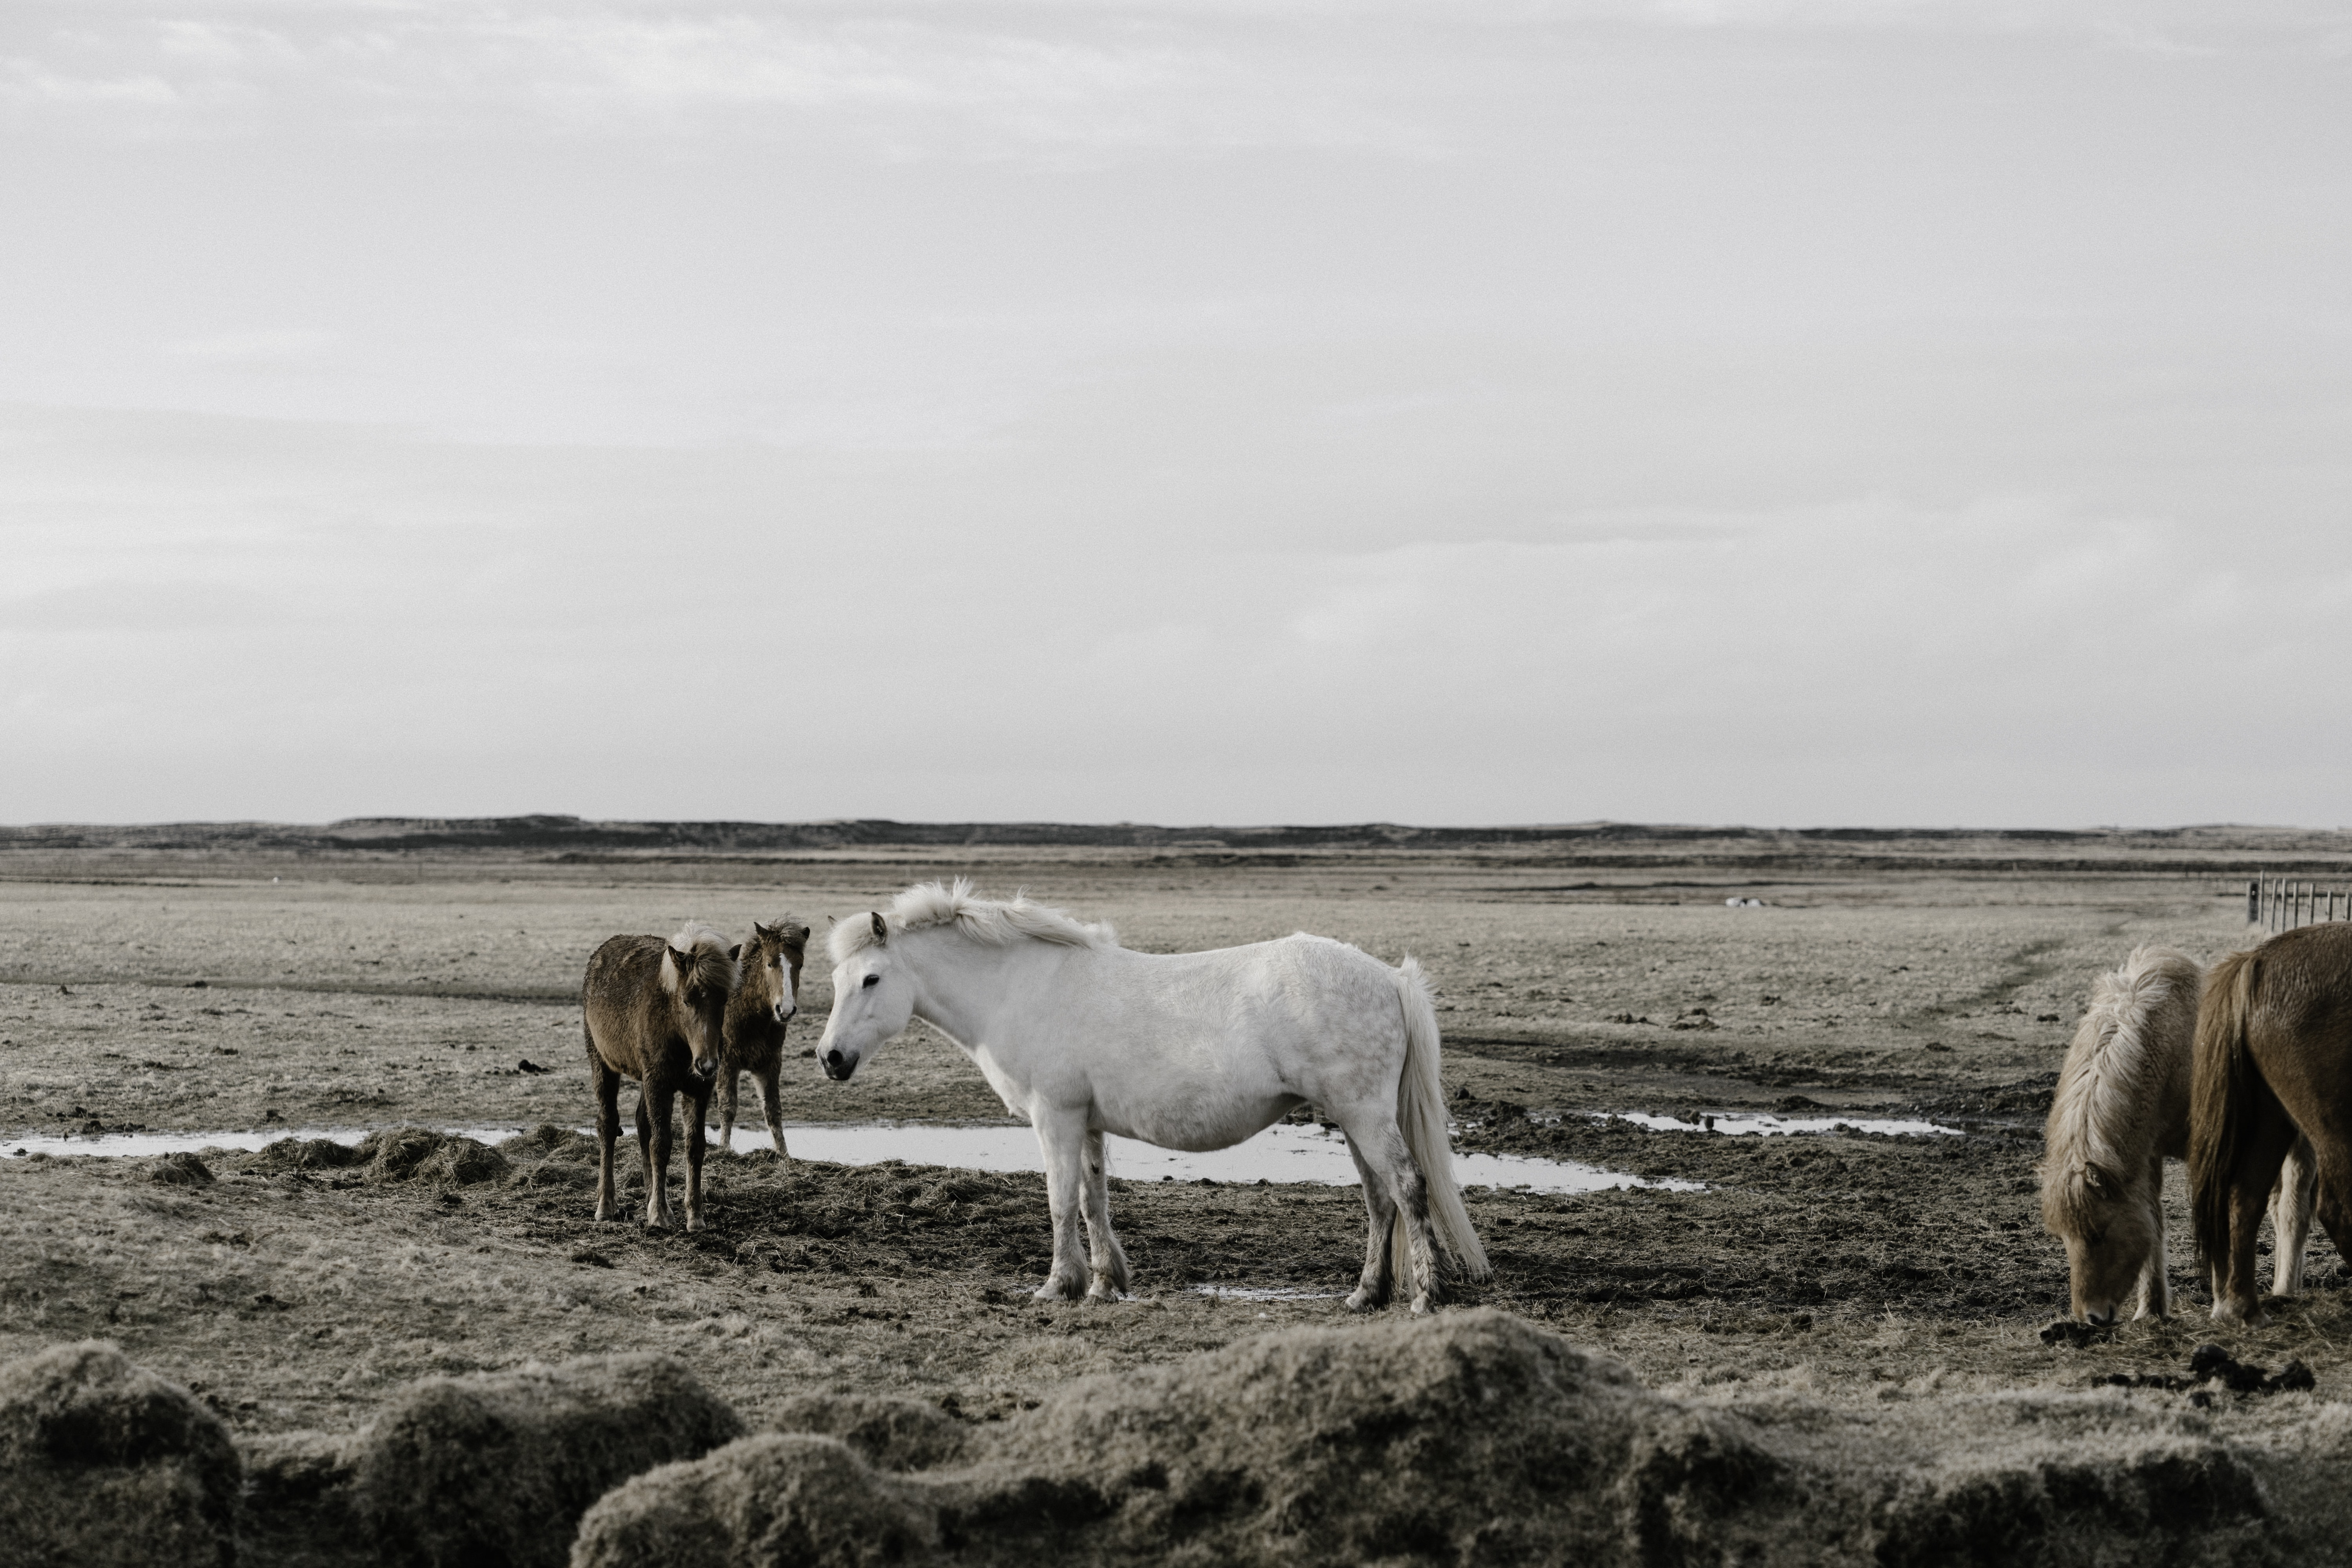 brown and white horses grazing on grass field